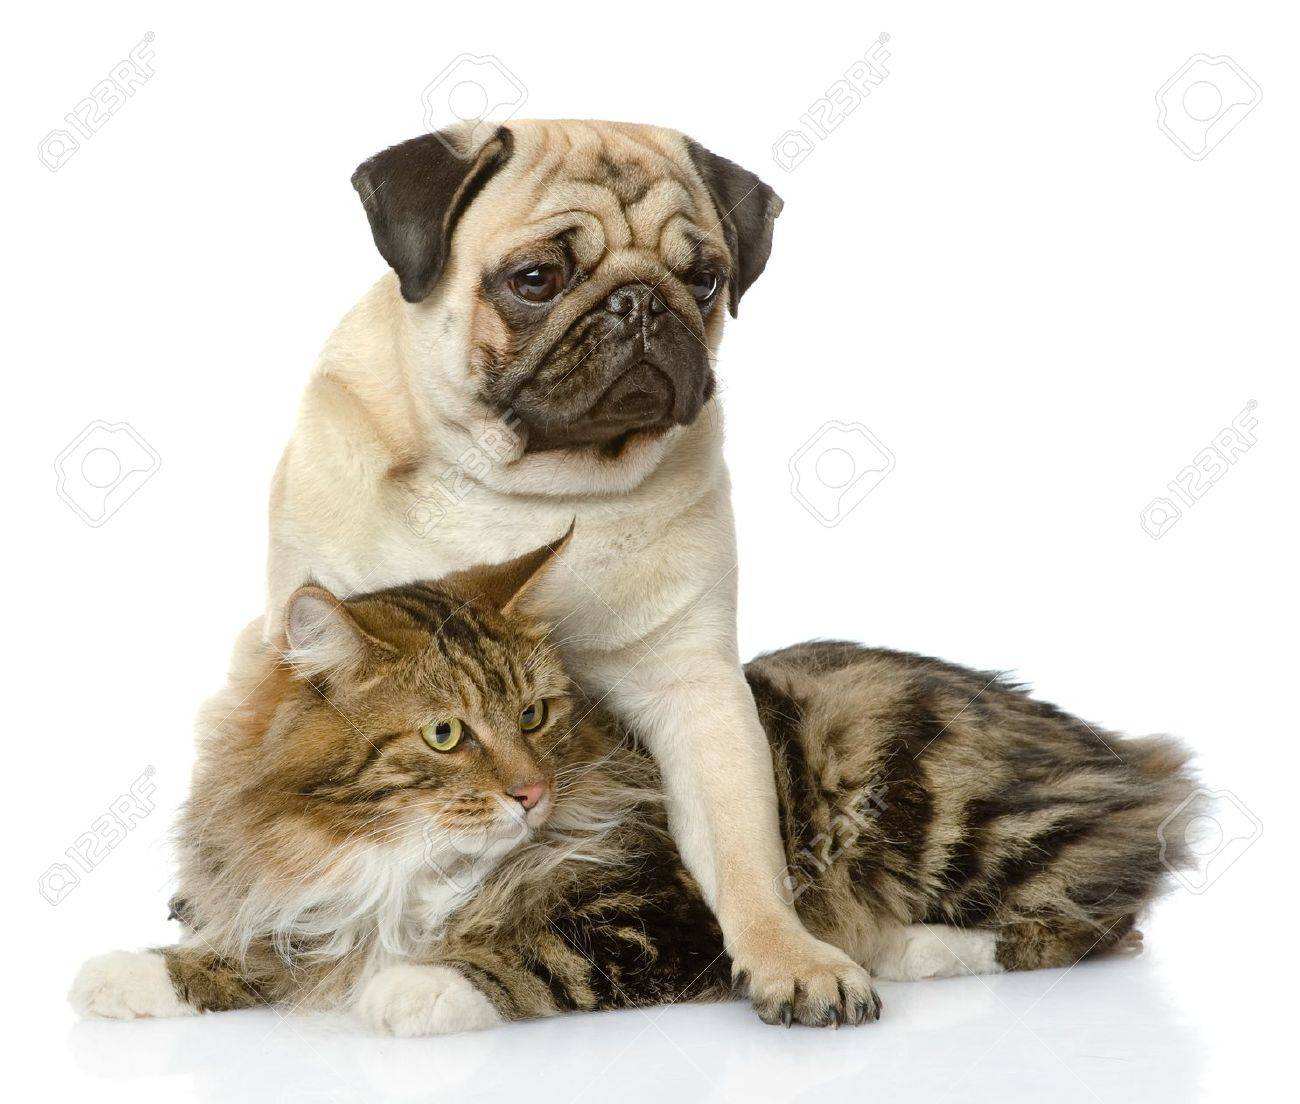 pug puppy hugs a cat  isolated on white background Stock Photo - 20931094